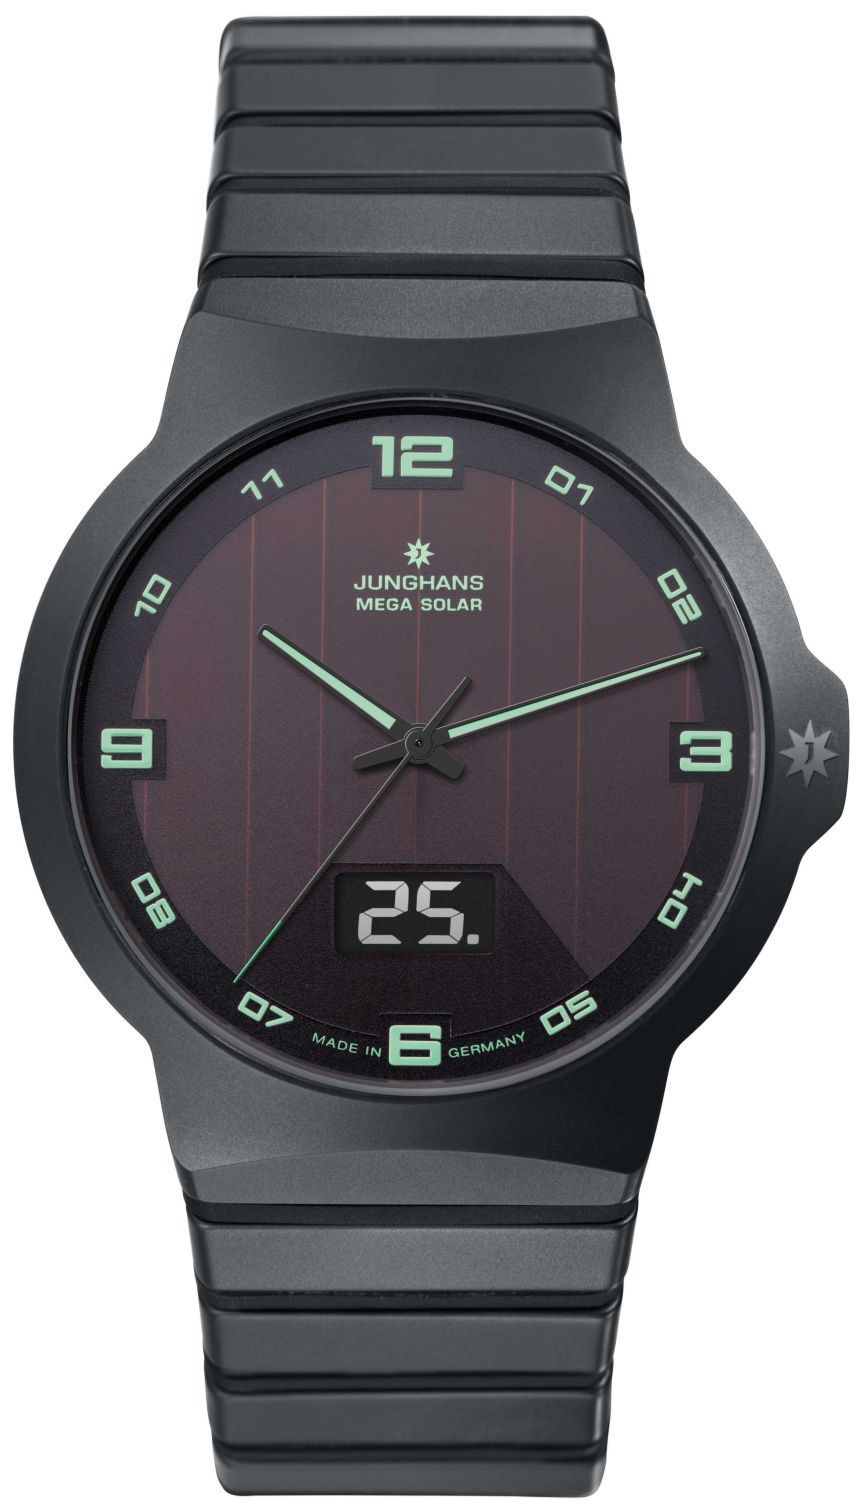 Junghans Force Mega Solar Watch With Wireless Charge And